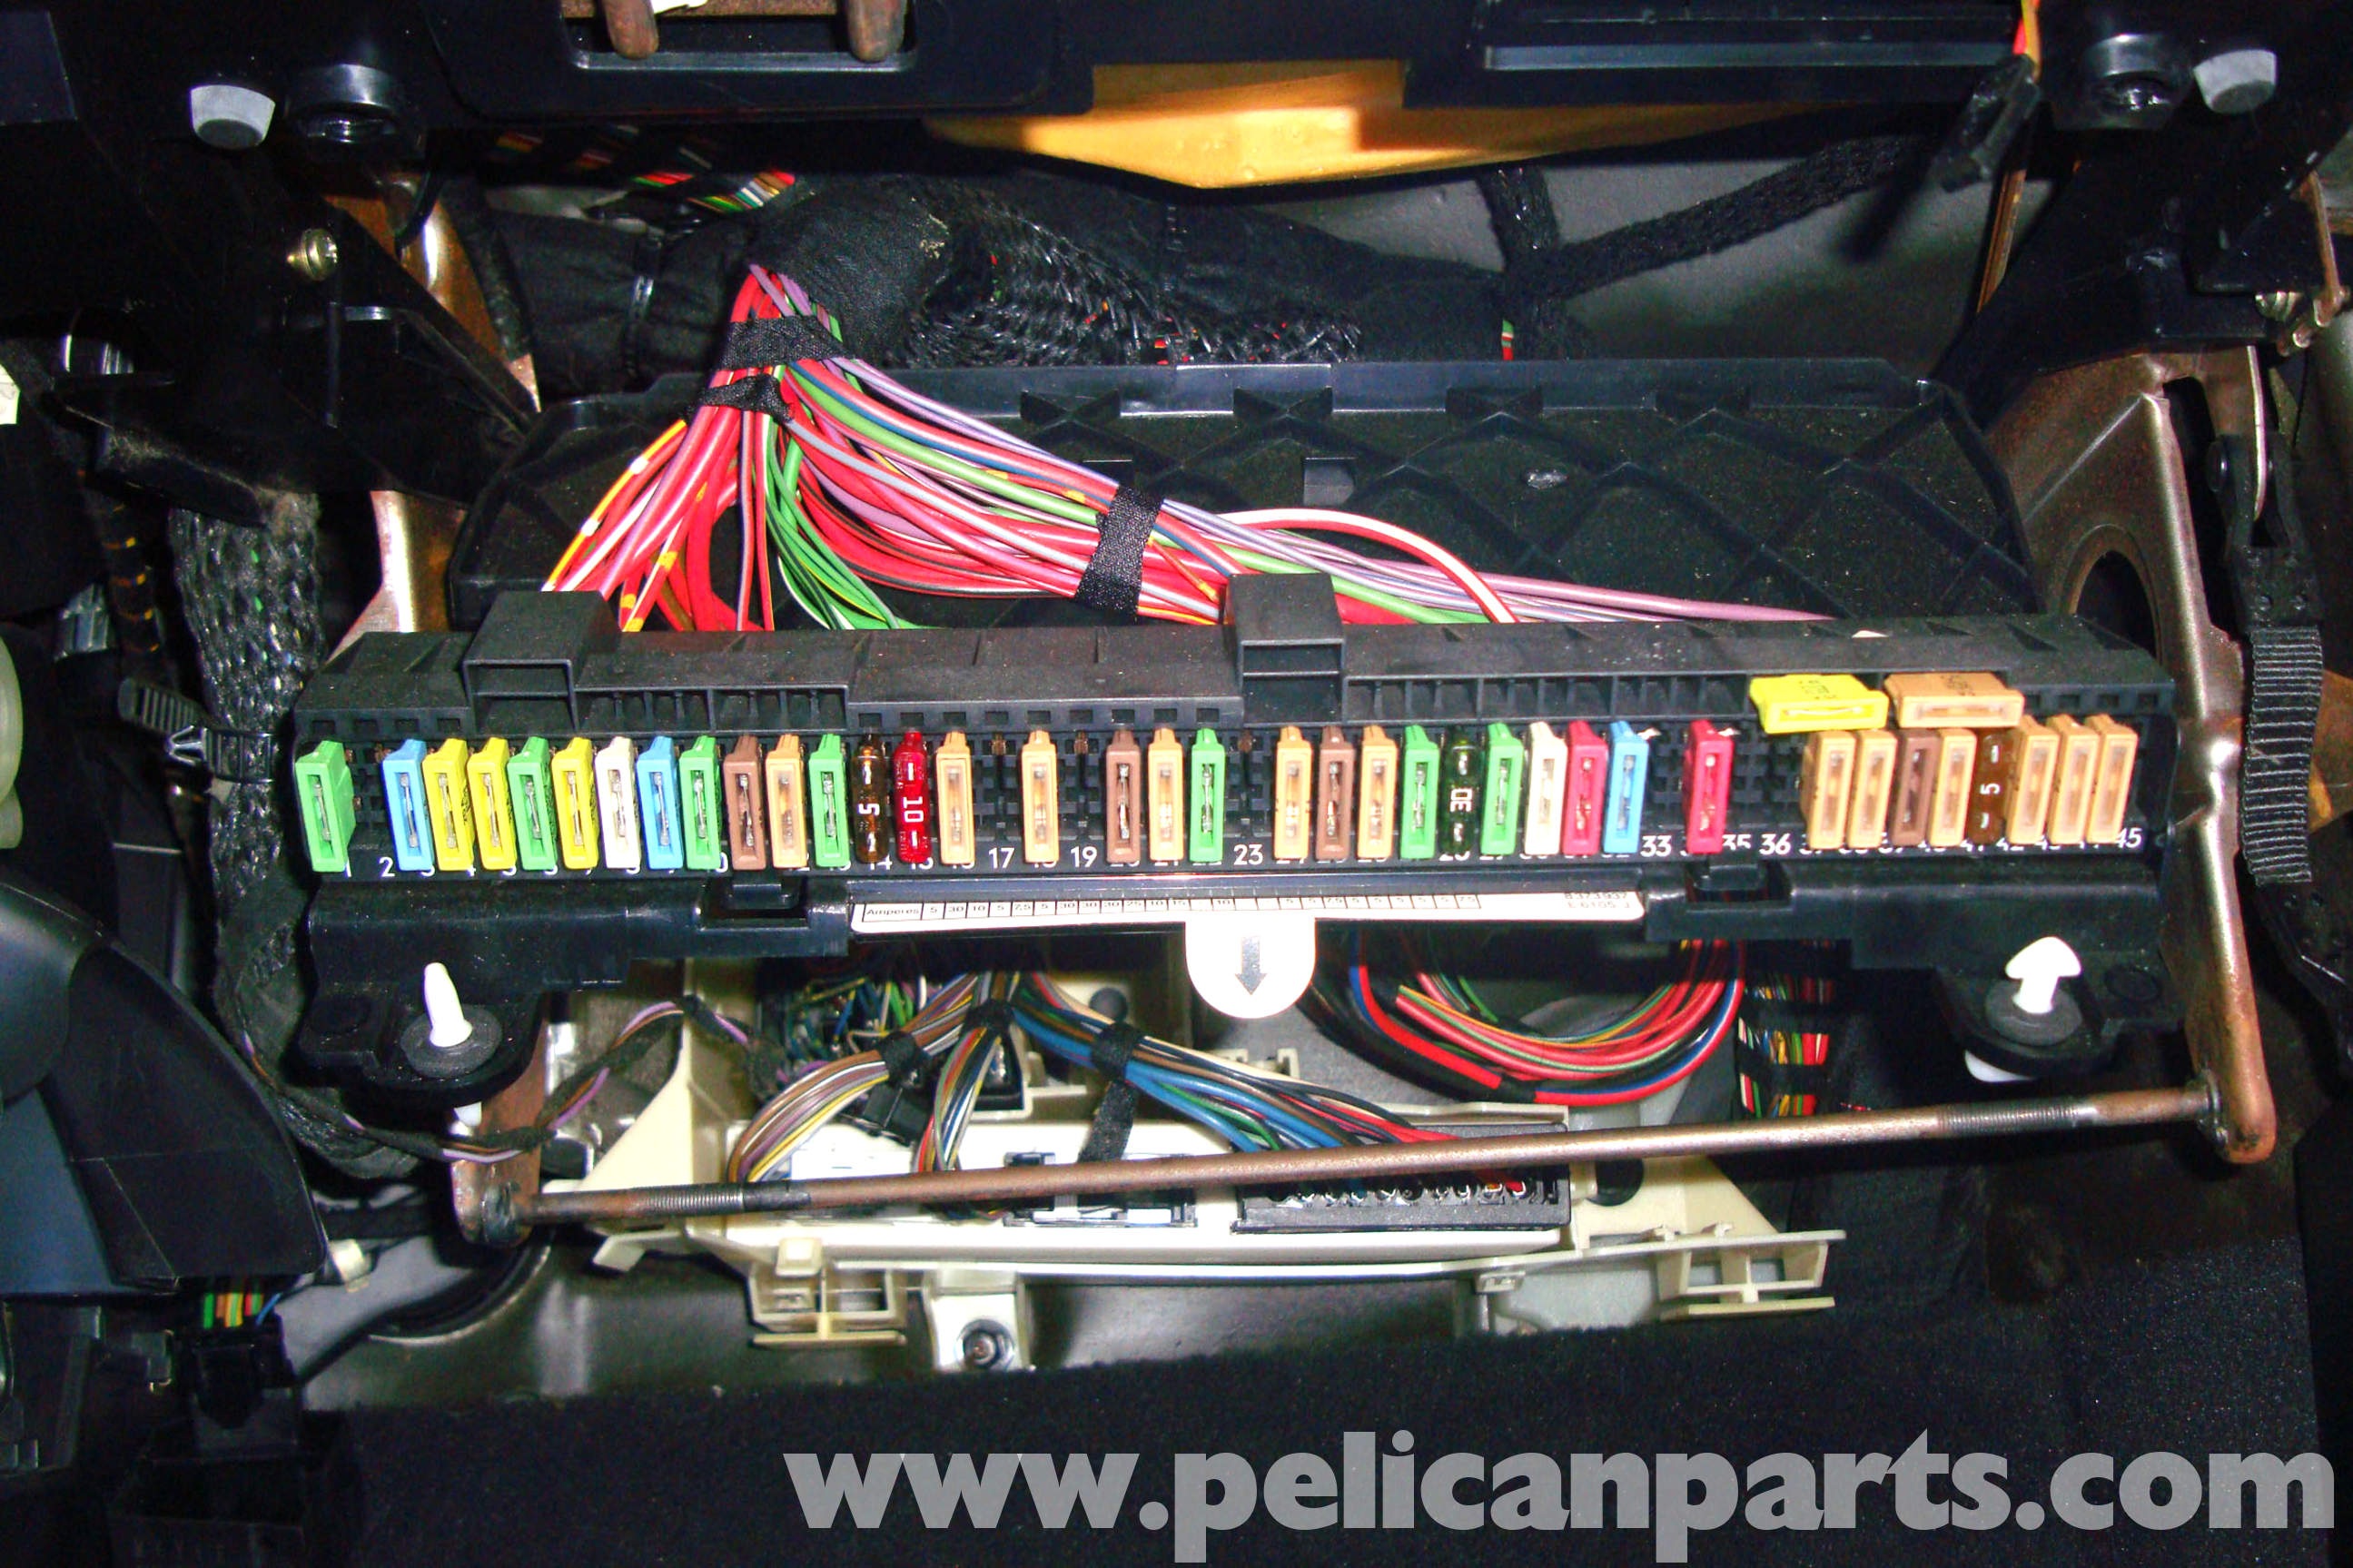 pic01 bmw e39 5 series blower motor testing 1997 2003 525i, 528i, 530i bmw e39 fuse diagram at bayanpartner.co